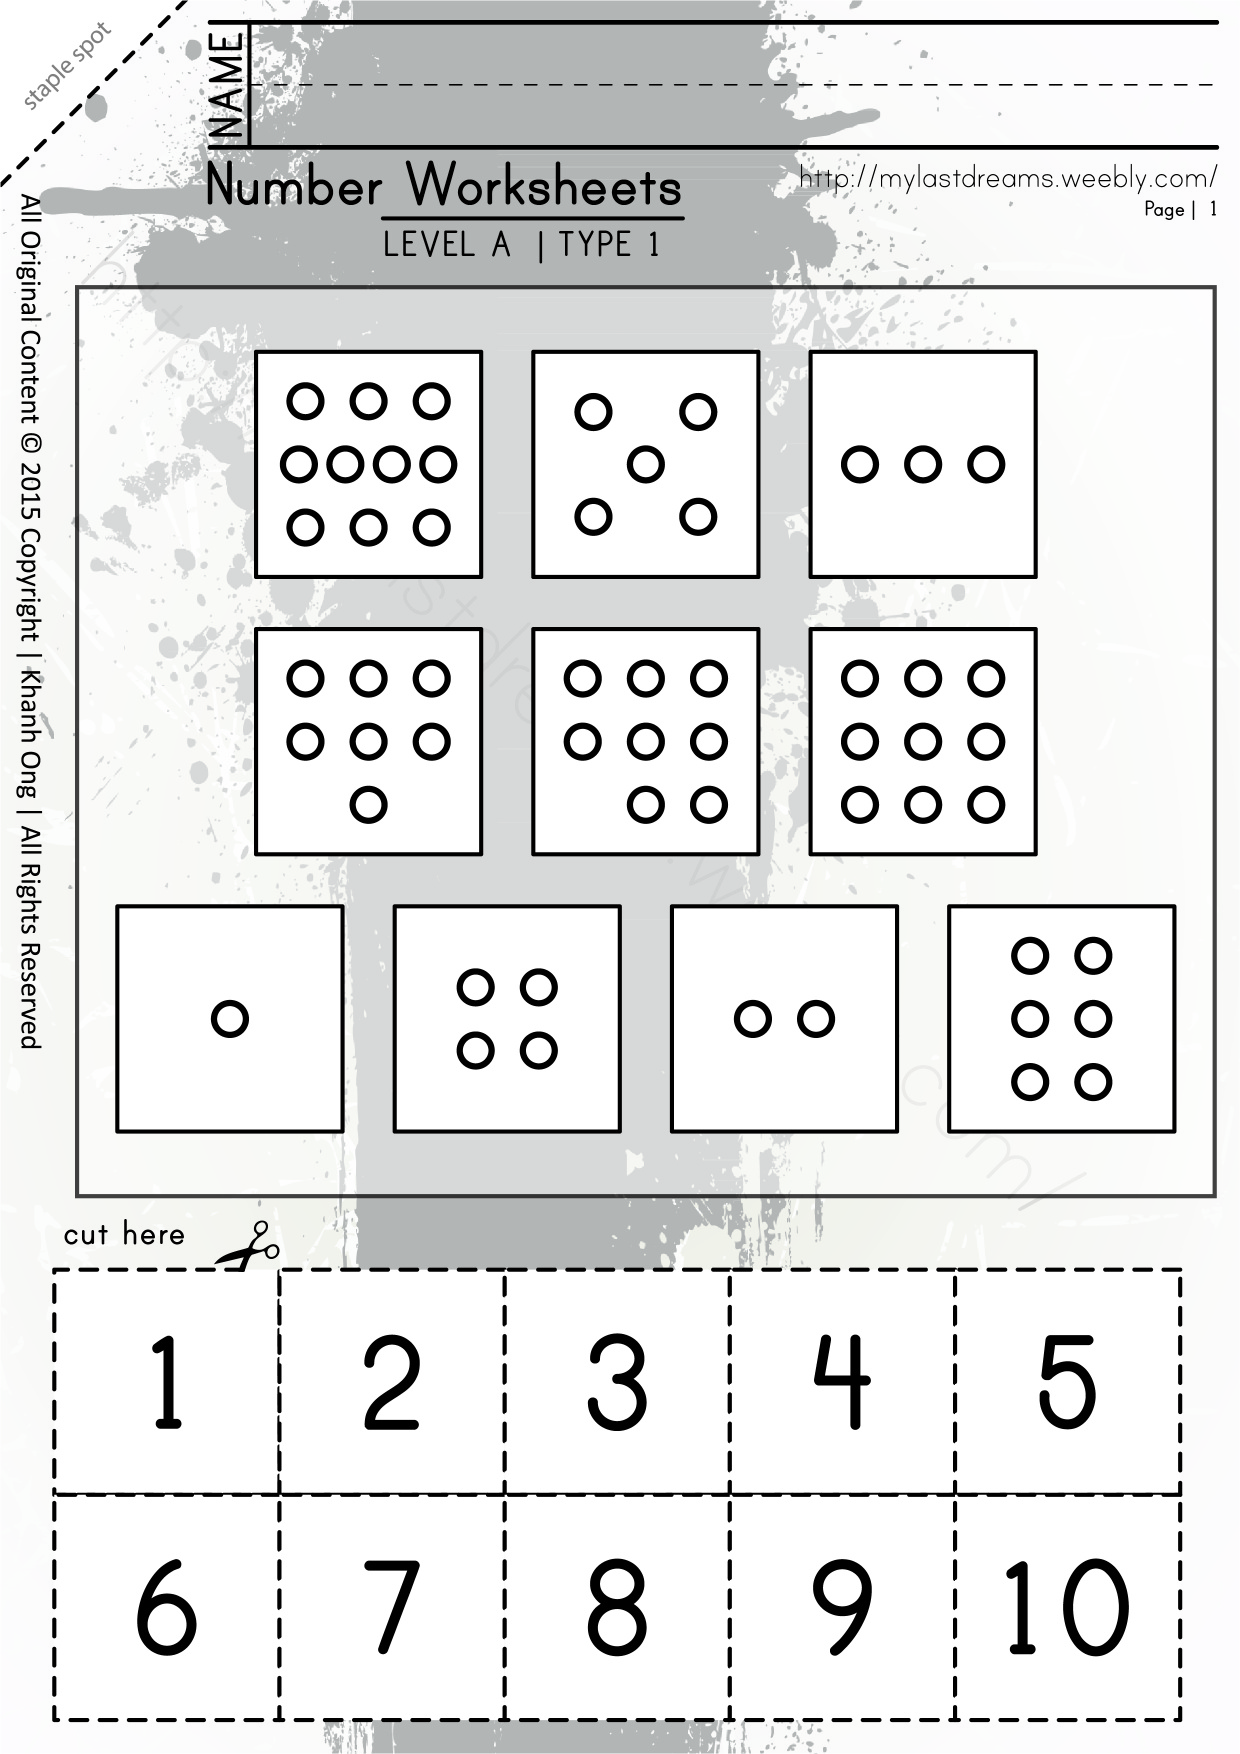 MLD - Basic Numbers Worksheets - Part 1 - A4 Sized